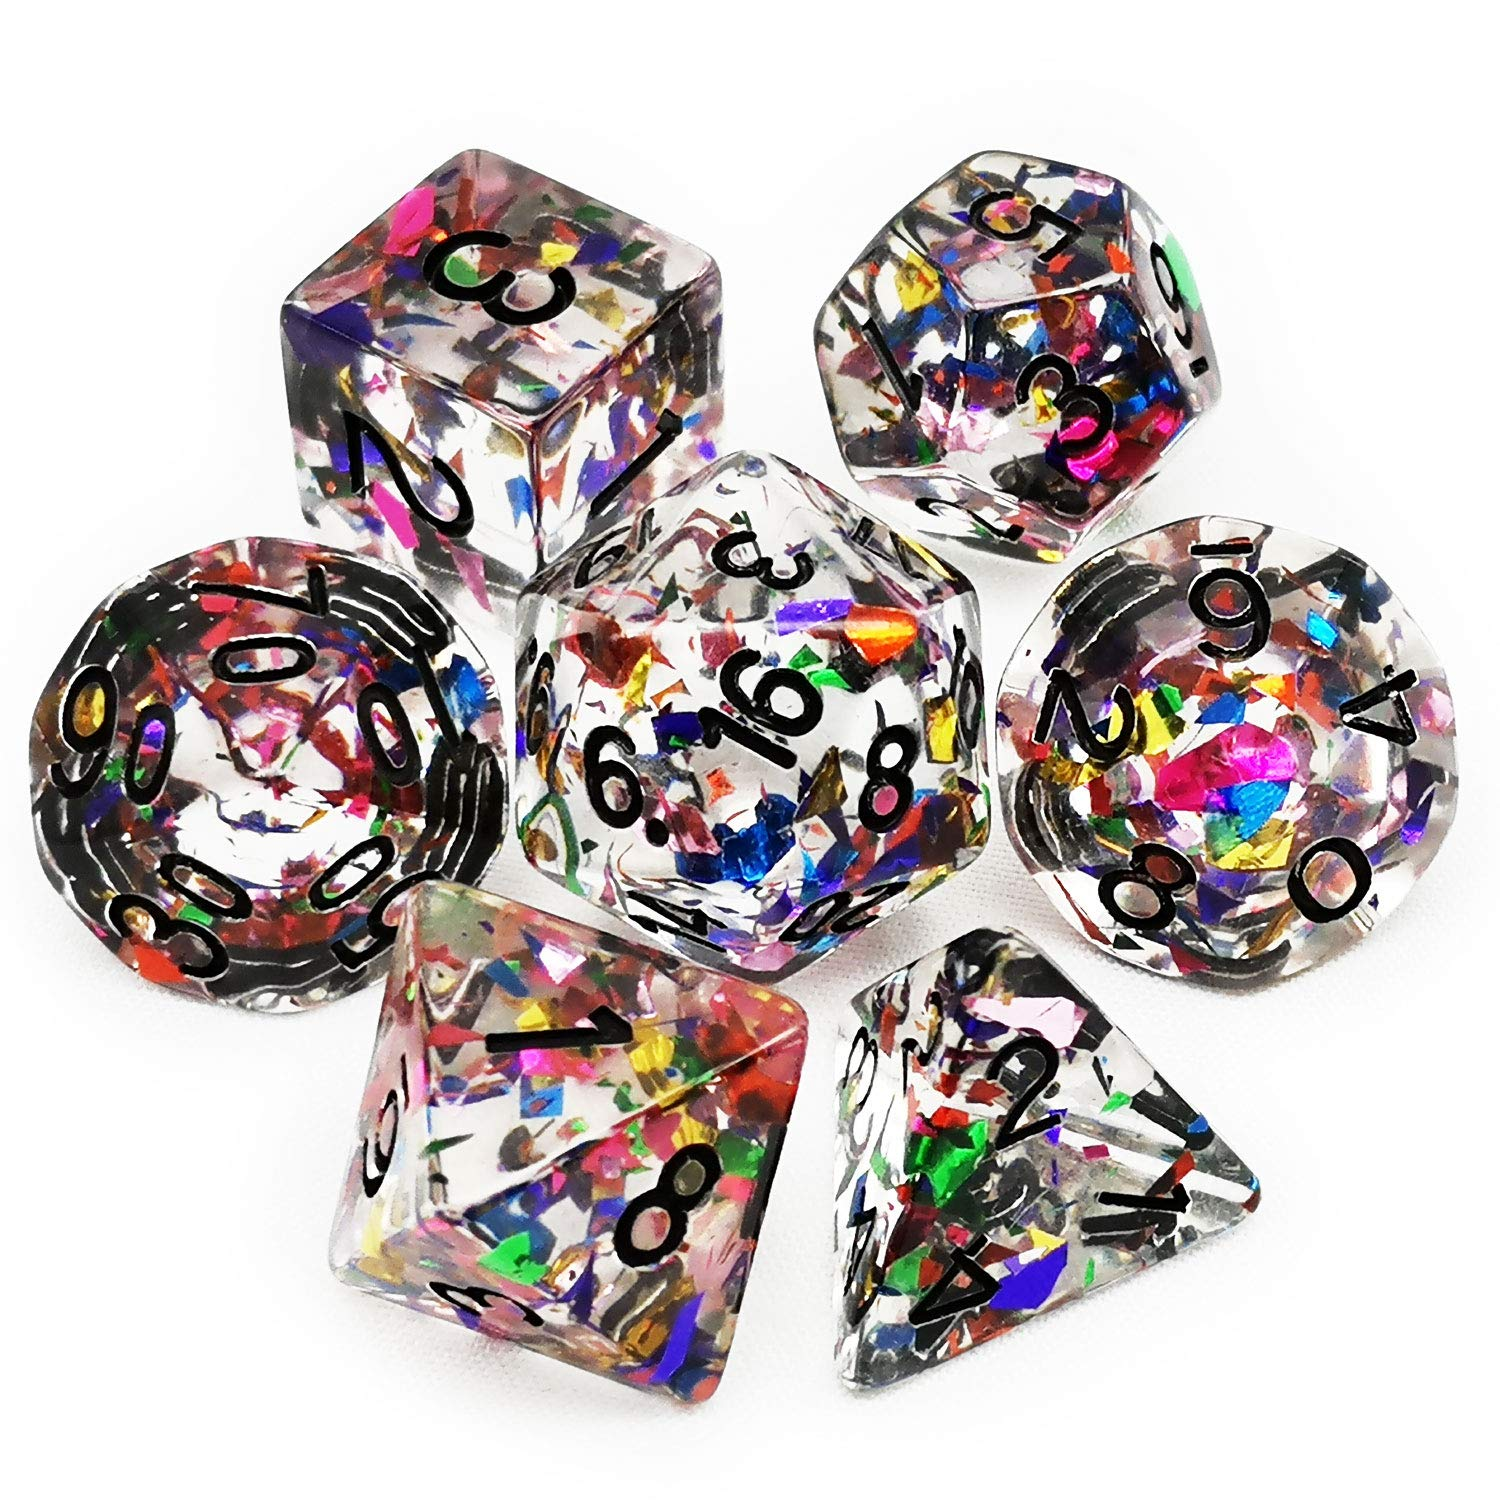 Haxtec Rainbow DND Dice Set 7PCS Polyhedral Confetti Dice for Roleplaying Dice Games as Dungeons and Dragons-Confetti Dice by Haxtec